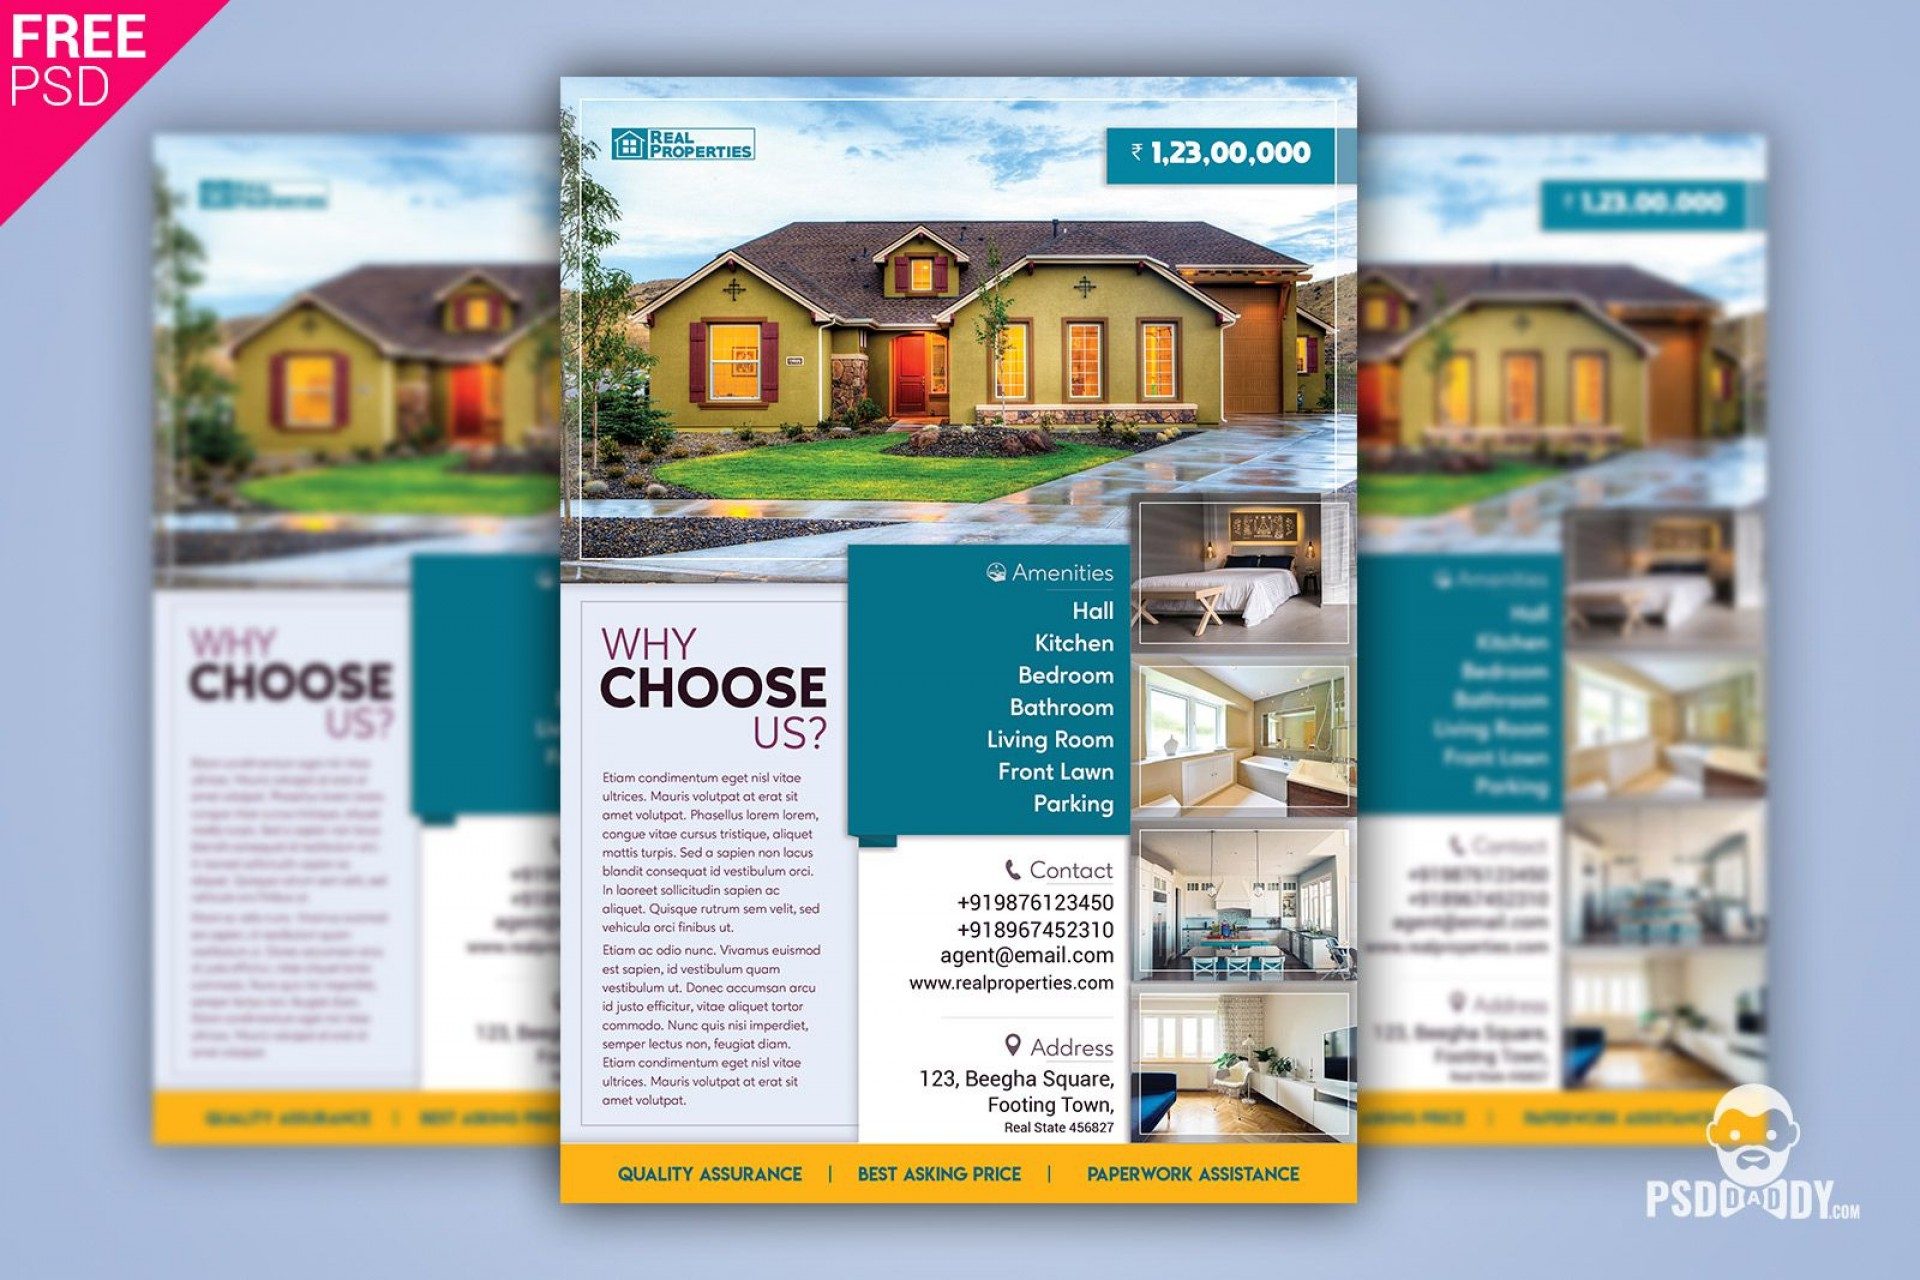 006 Top Real Estate Flyer Template Free Photo  Publisher Commercial Pdf Download1920